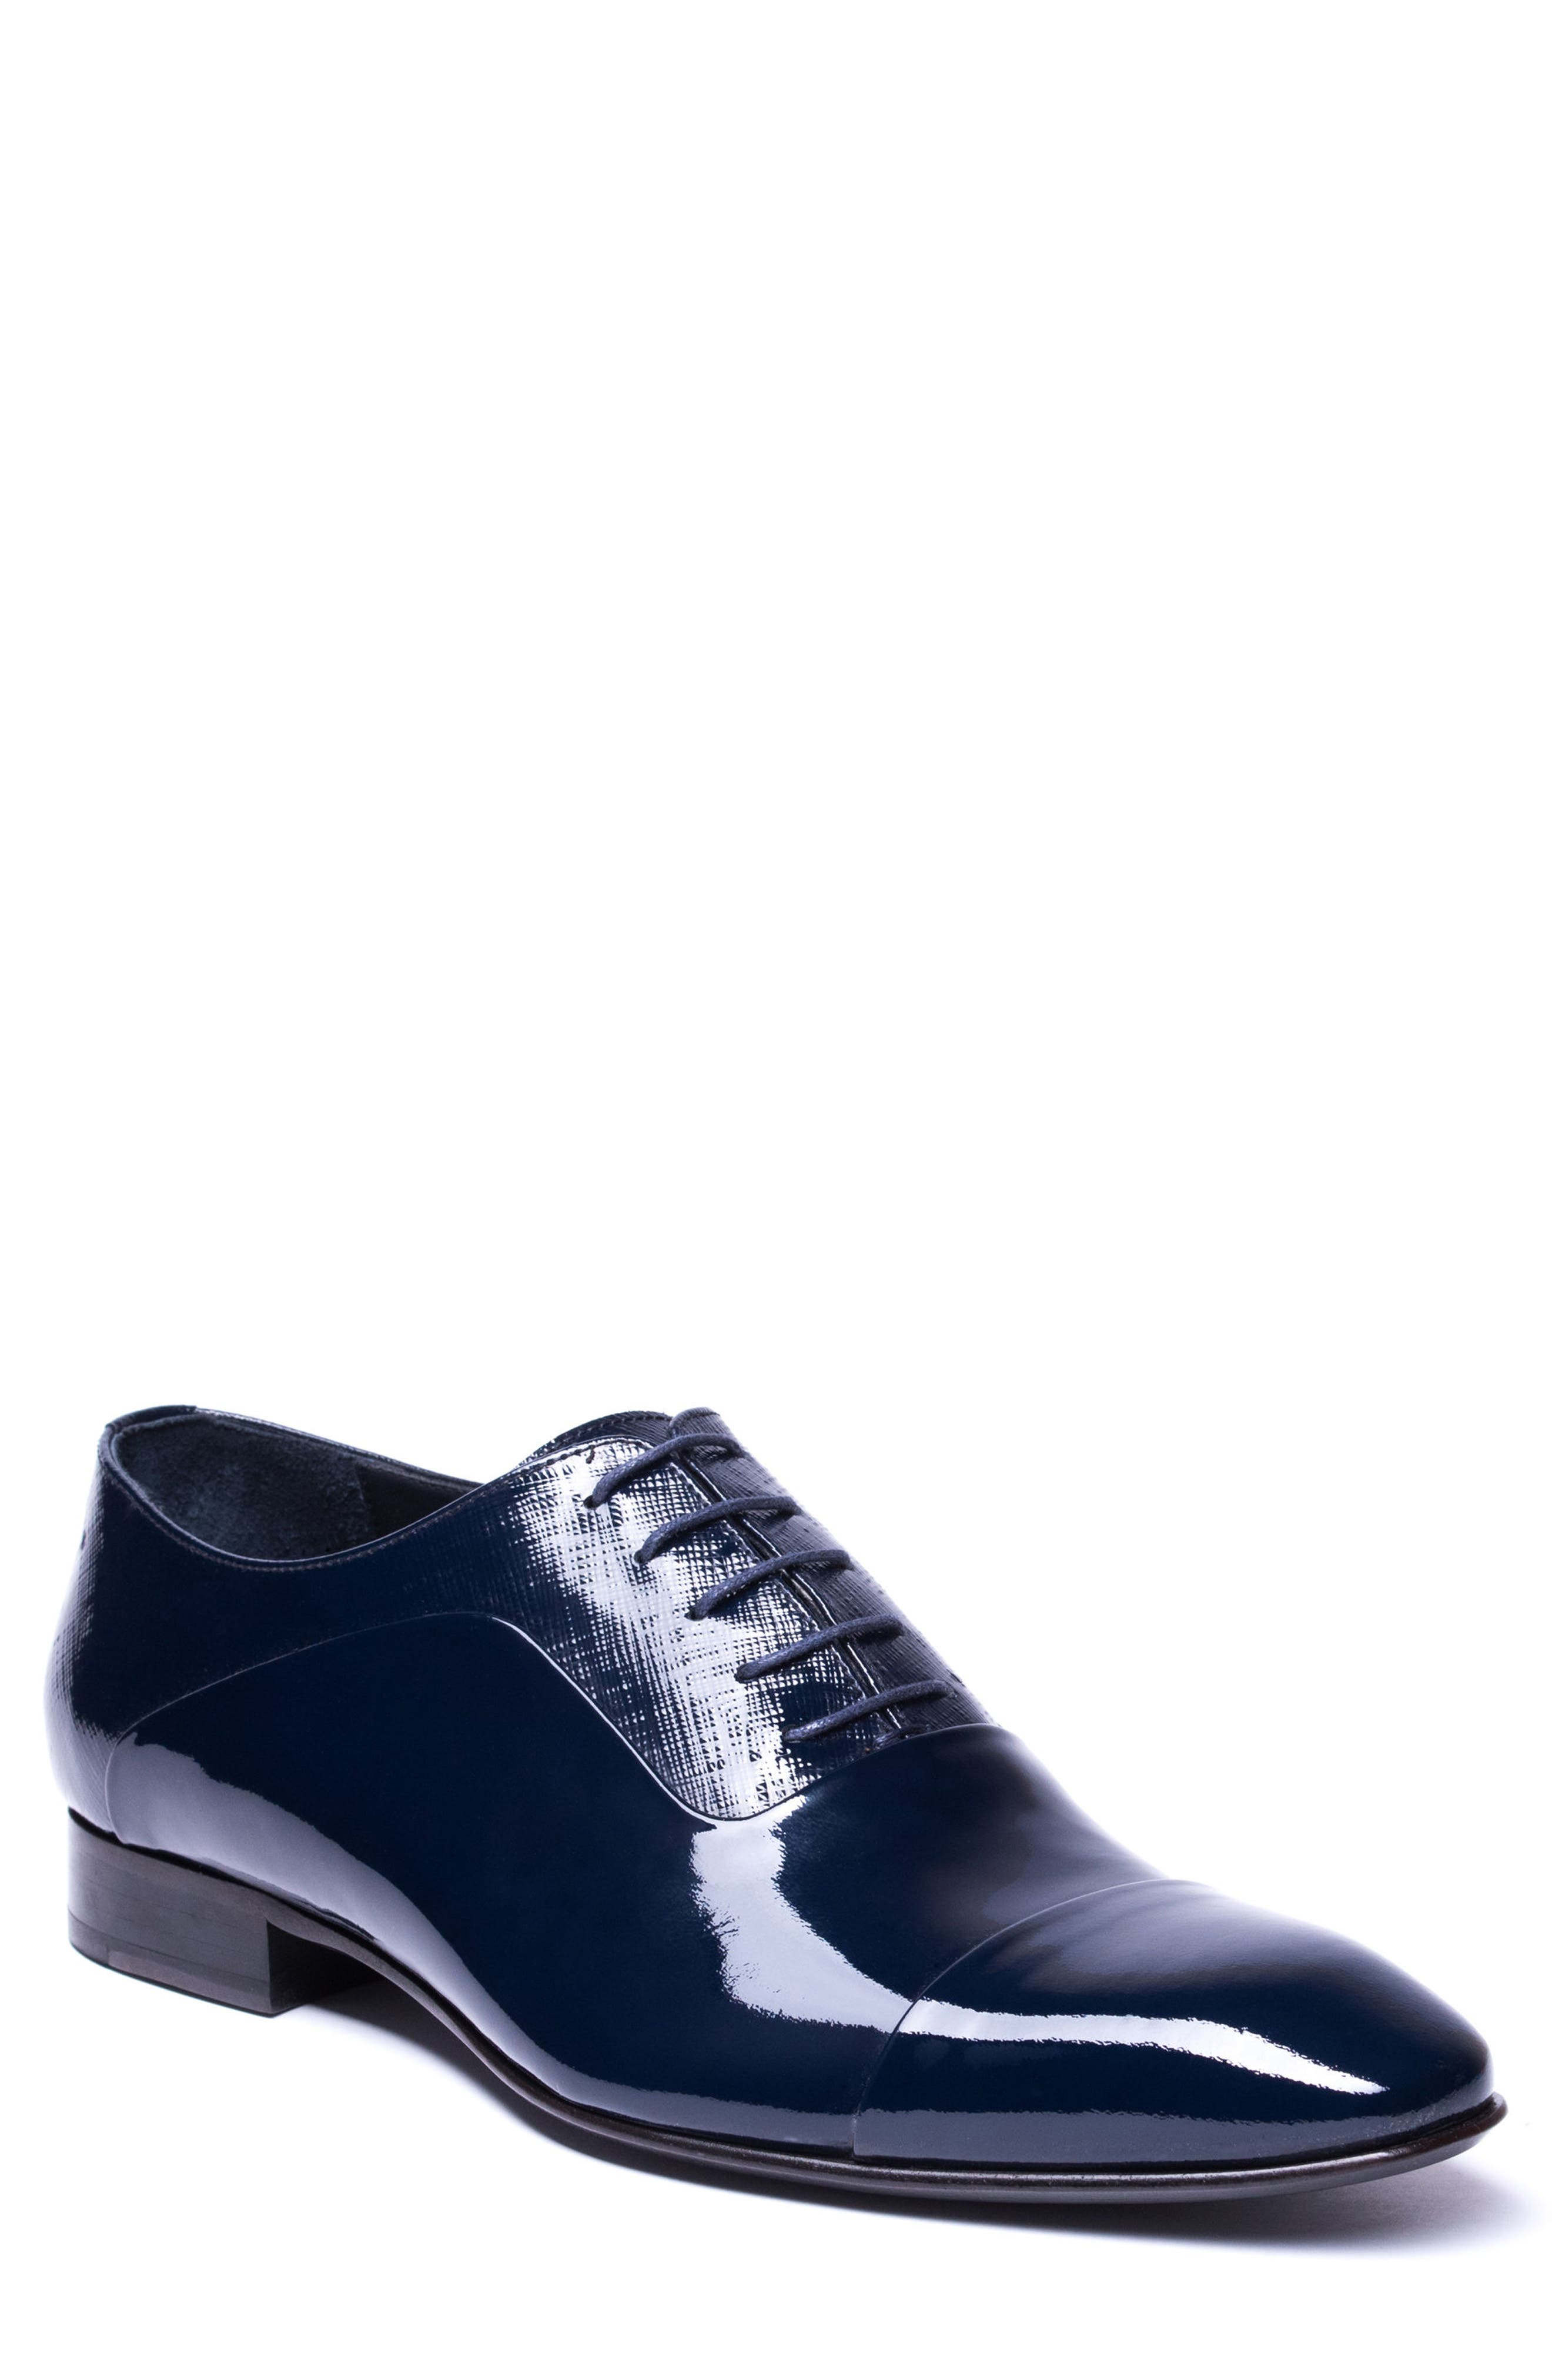 Jimmy Cap Toe Oxford,                         Main,                         color, Navy Leather